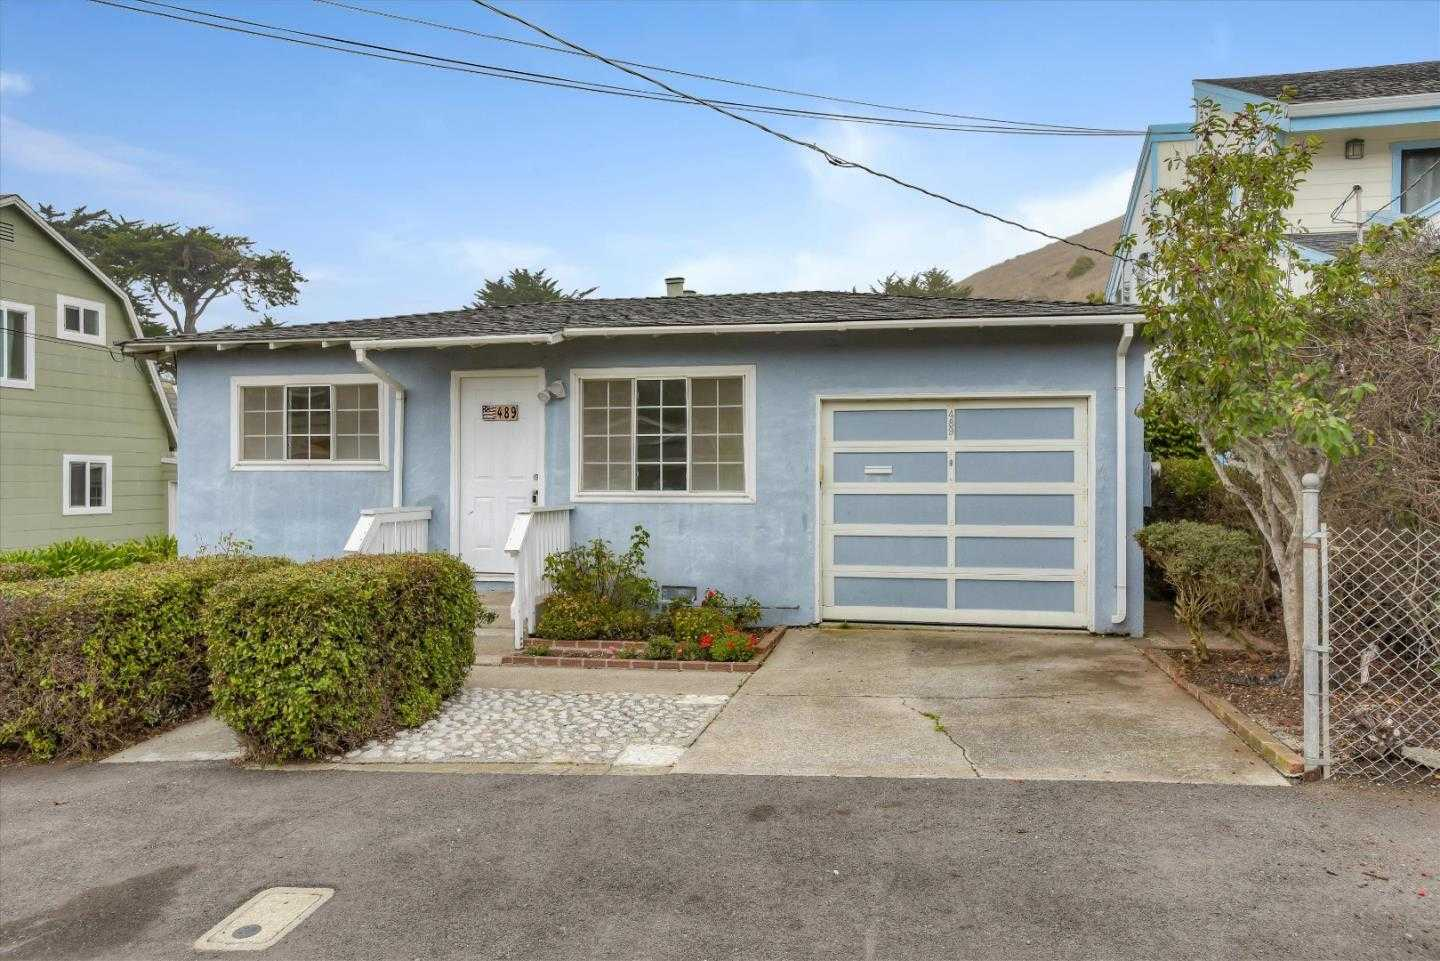 $799,000 - 2Br/1Ba -  for Sale in Pacifica